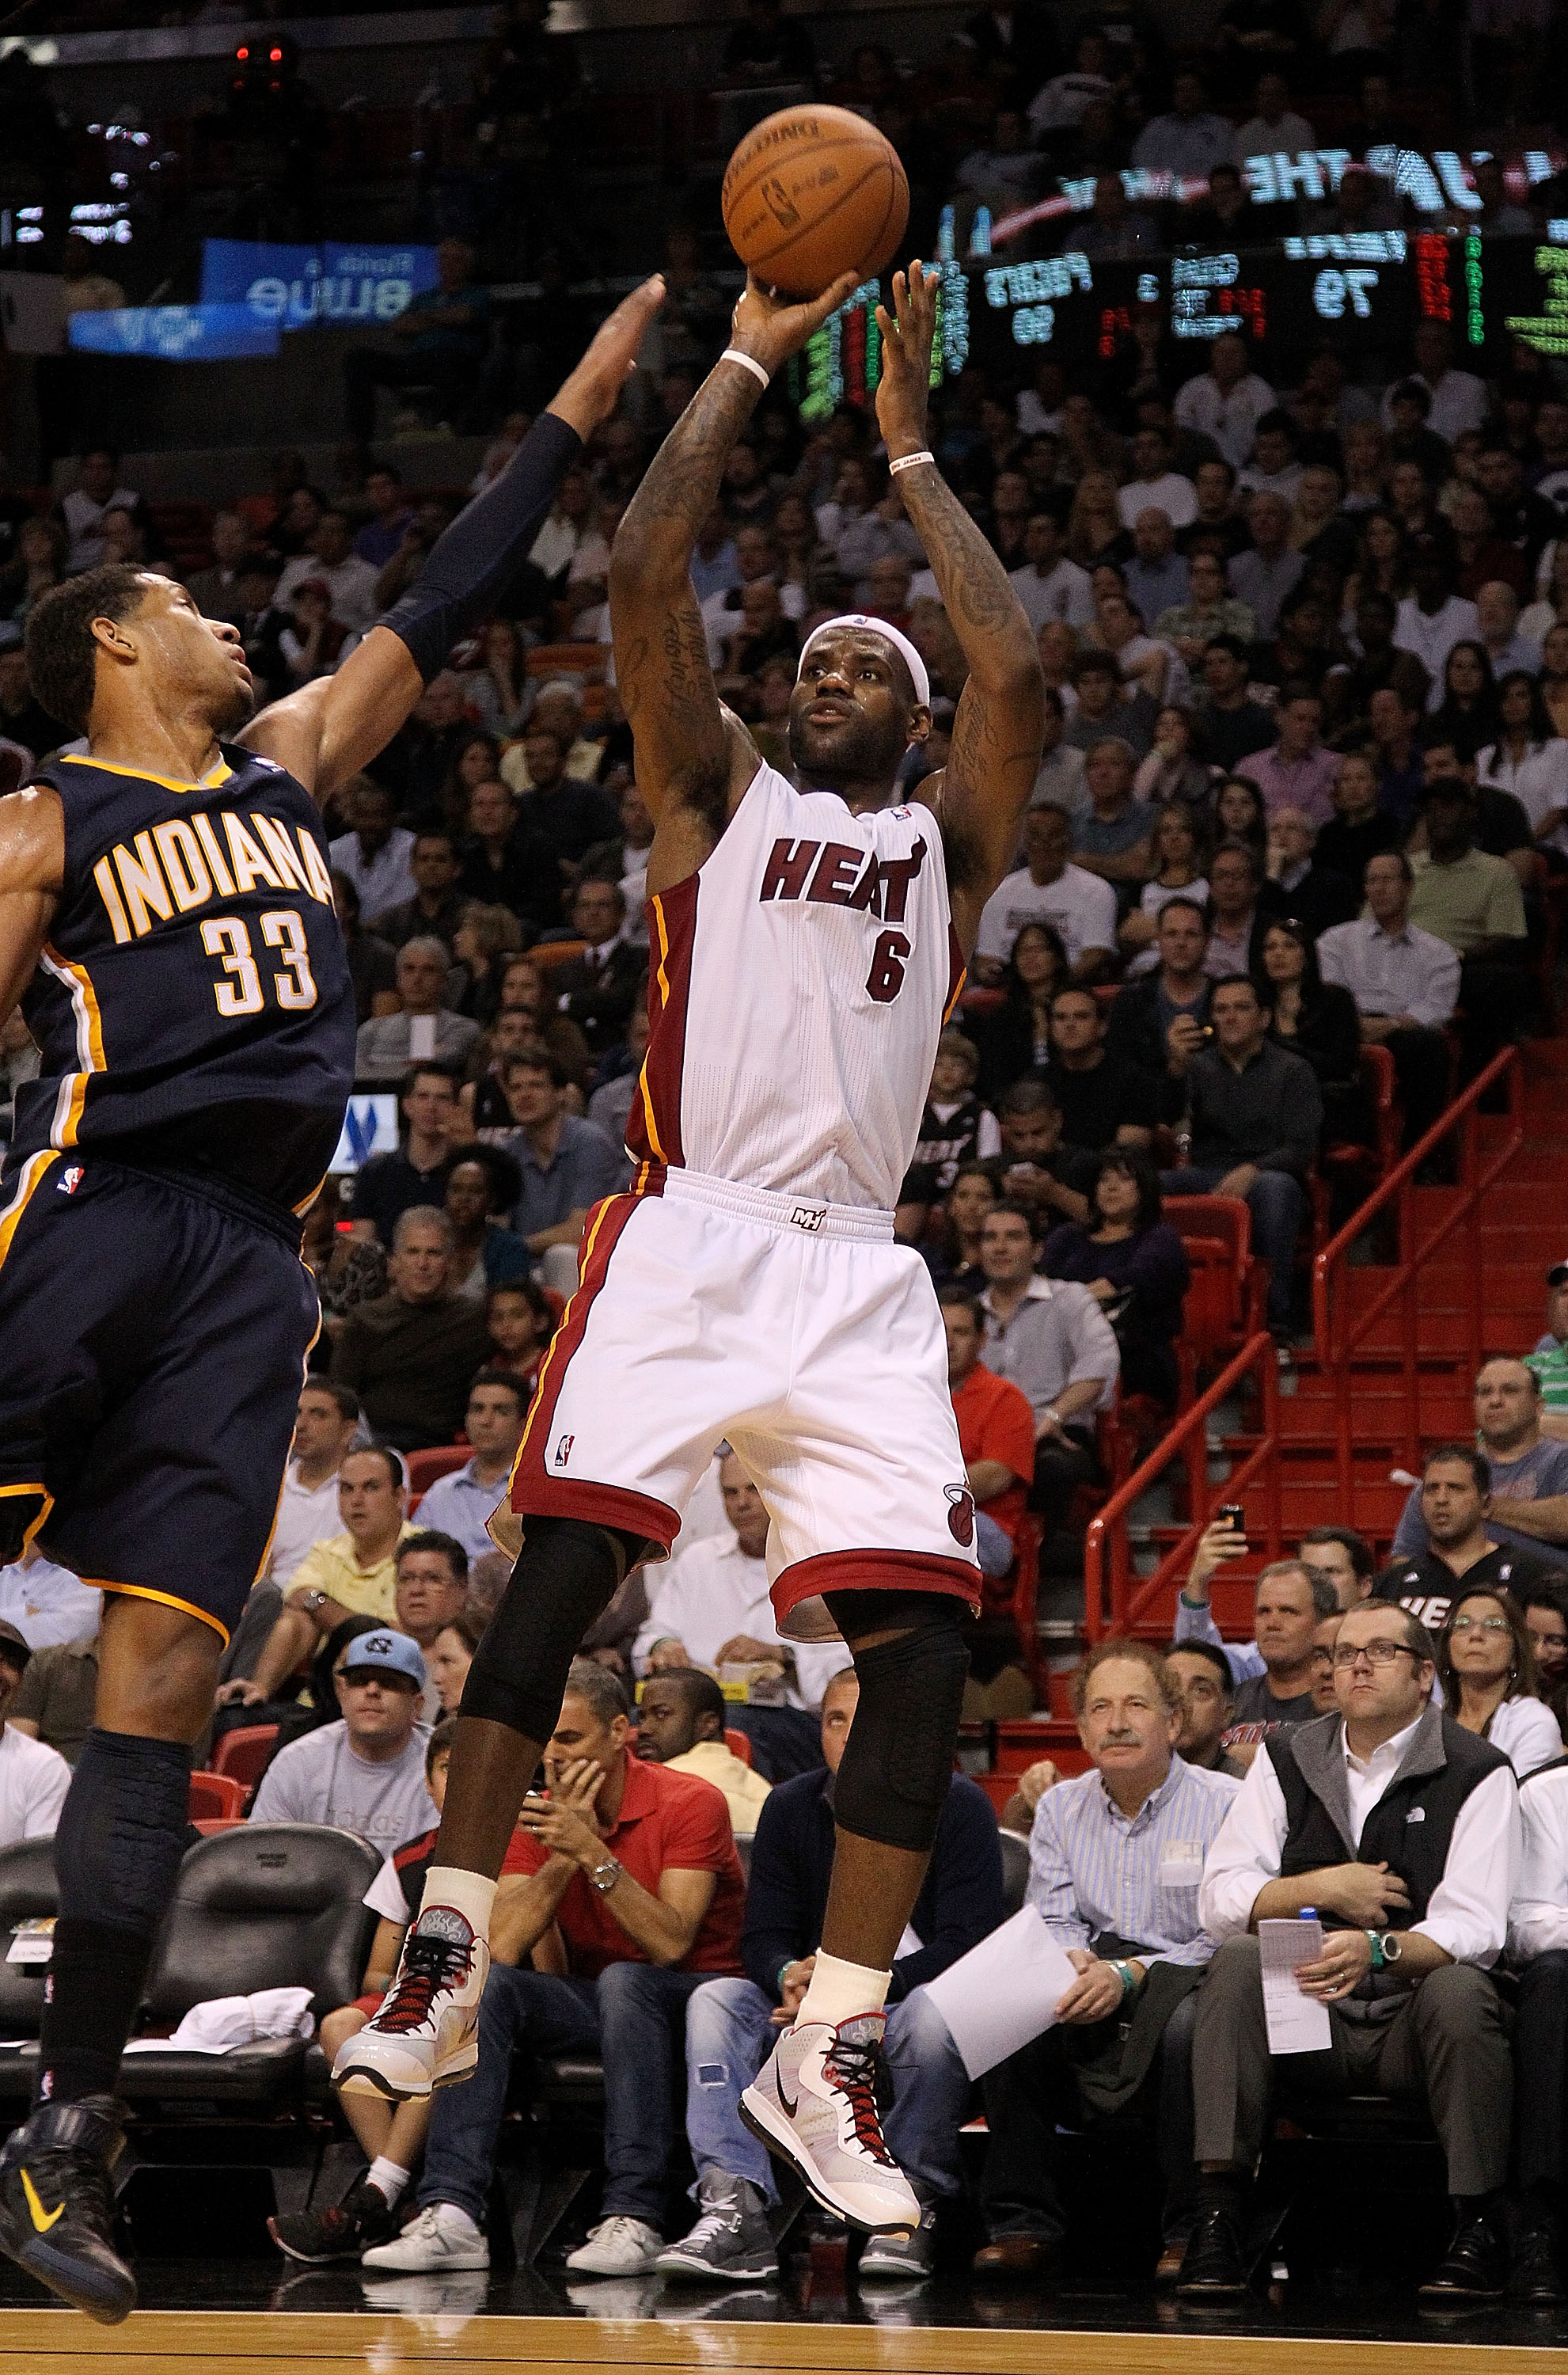 MIAMI, FL - FEBRUARY 08:  LeBron James #6 of the Miami Heat shoots over Danny Granger #33 of the Indiana Pacers during a game at American Airlines Arena on February 8, 2011 in Miami, Florida. NOTE TO USER: User expressly acknowledges and agrees that, by d